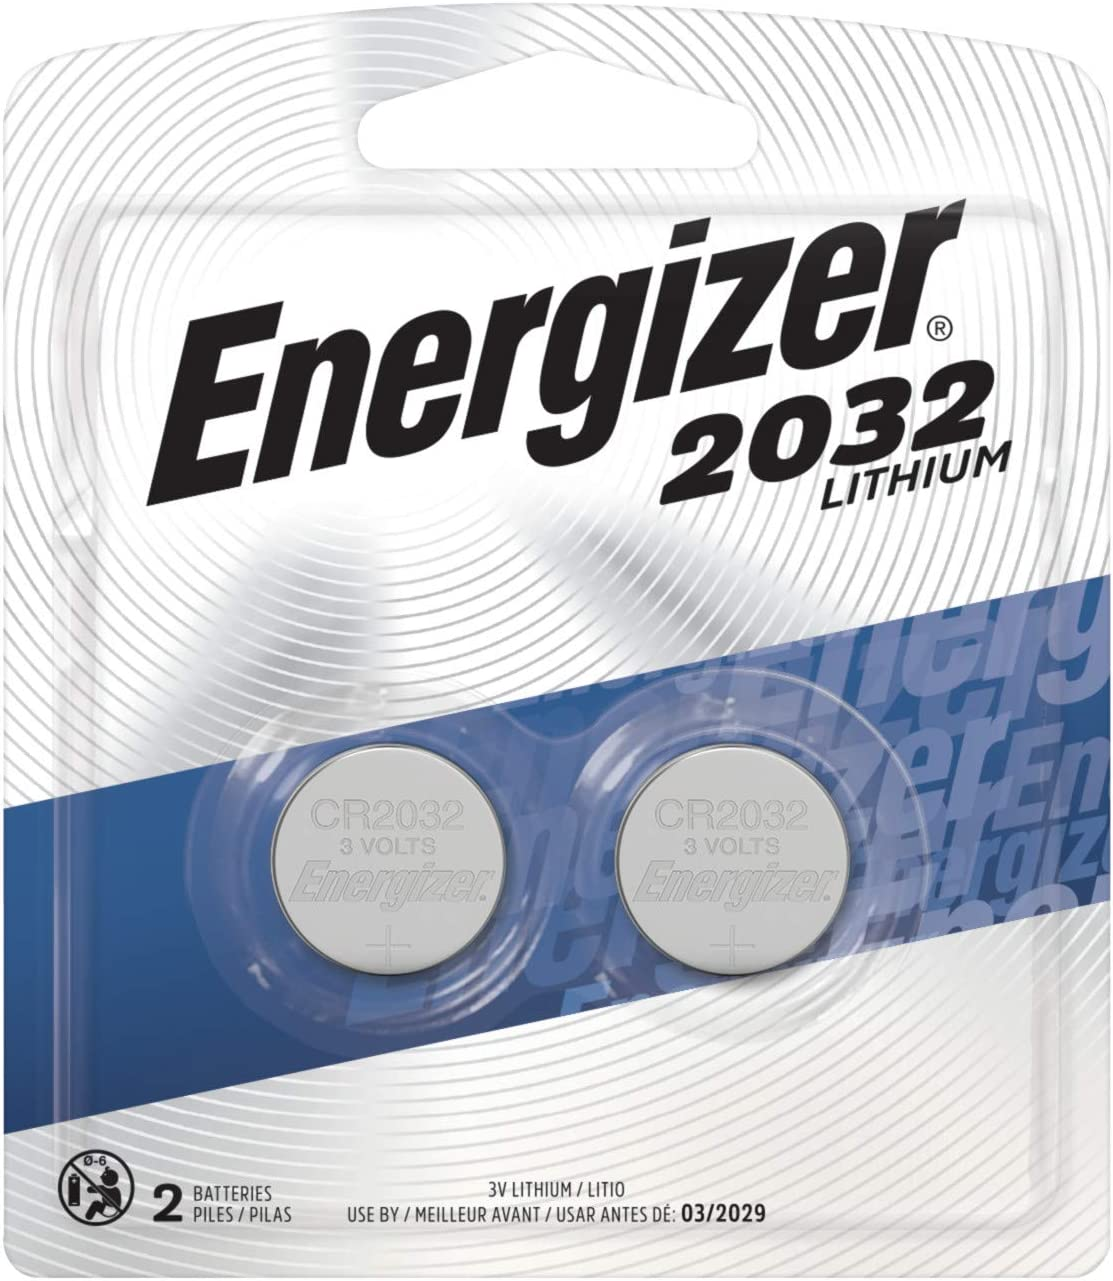 Energizer Watch/Electronic Battery (2032), 3 Volt, 2 ct